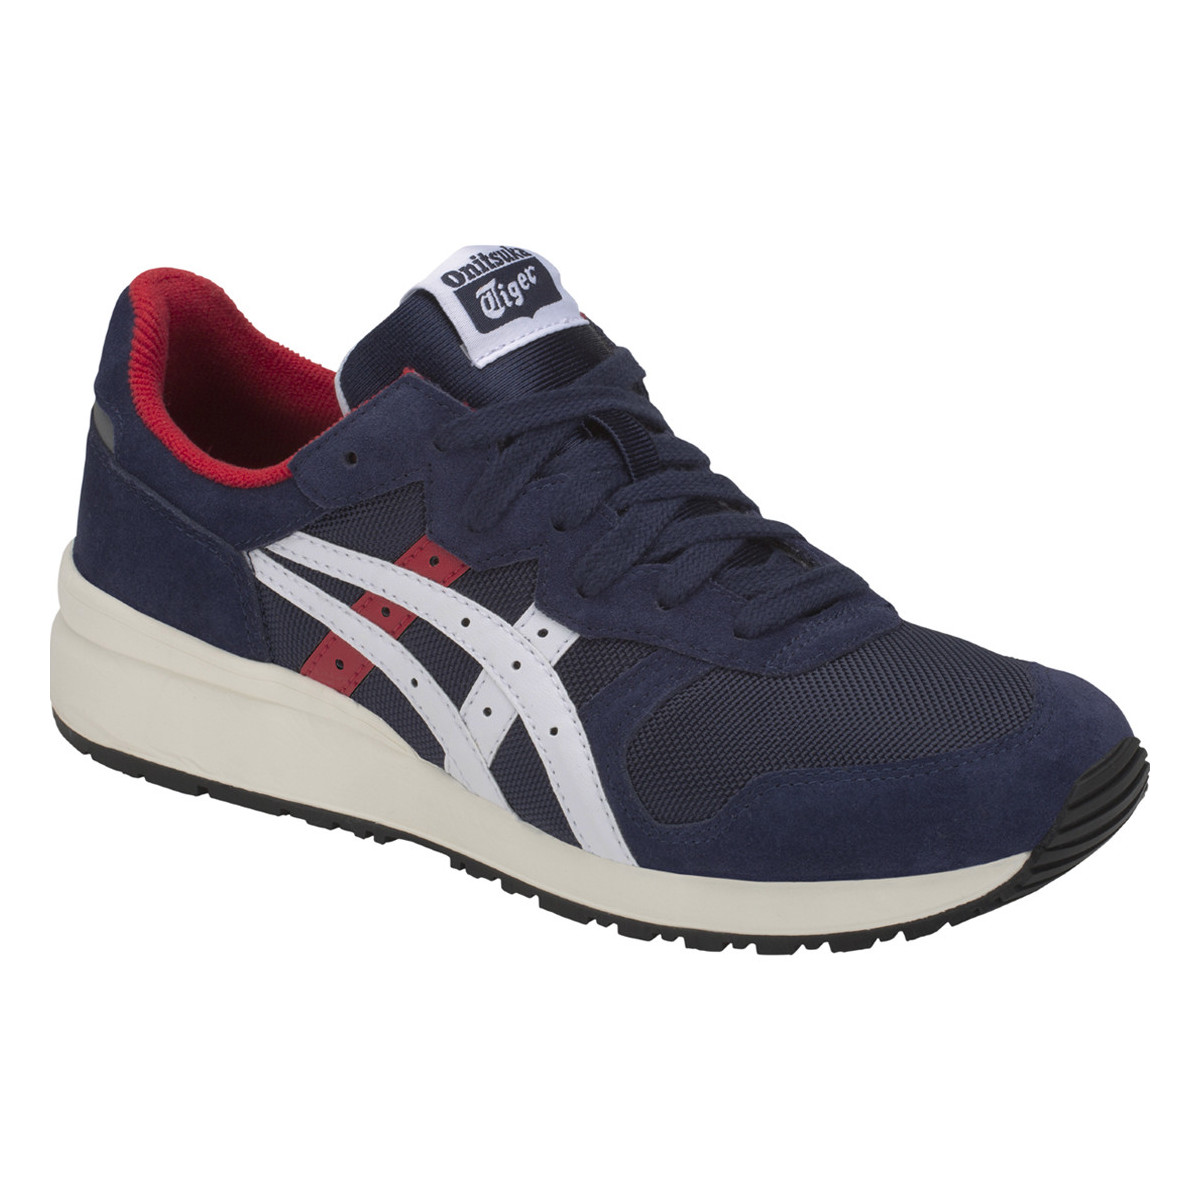 Sneakers Onitsuka Tiger  Ally 1183A029-400